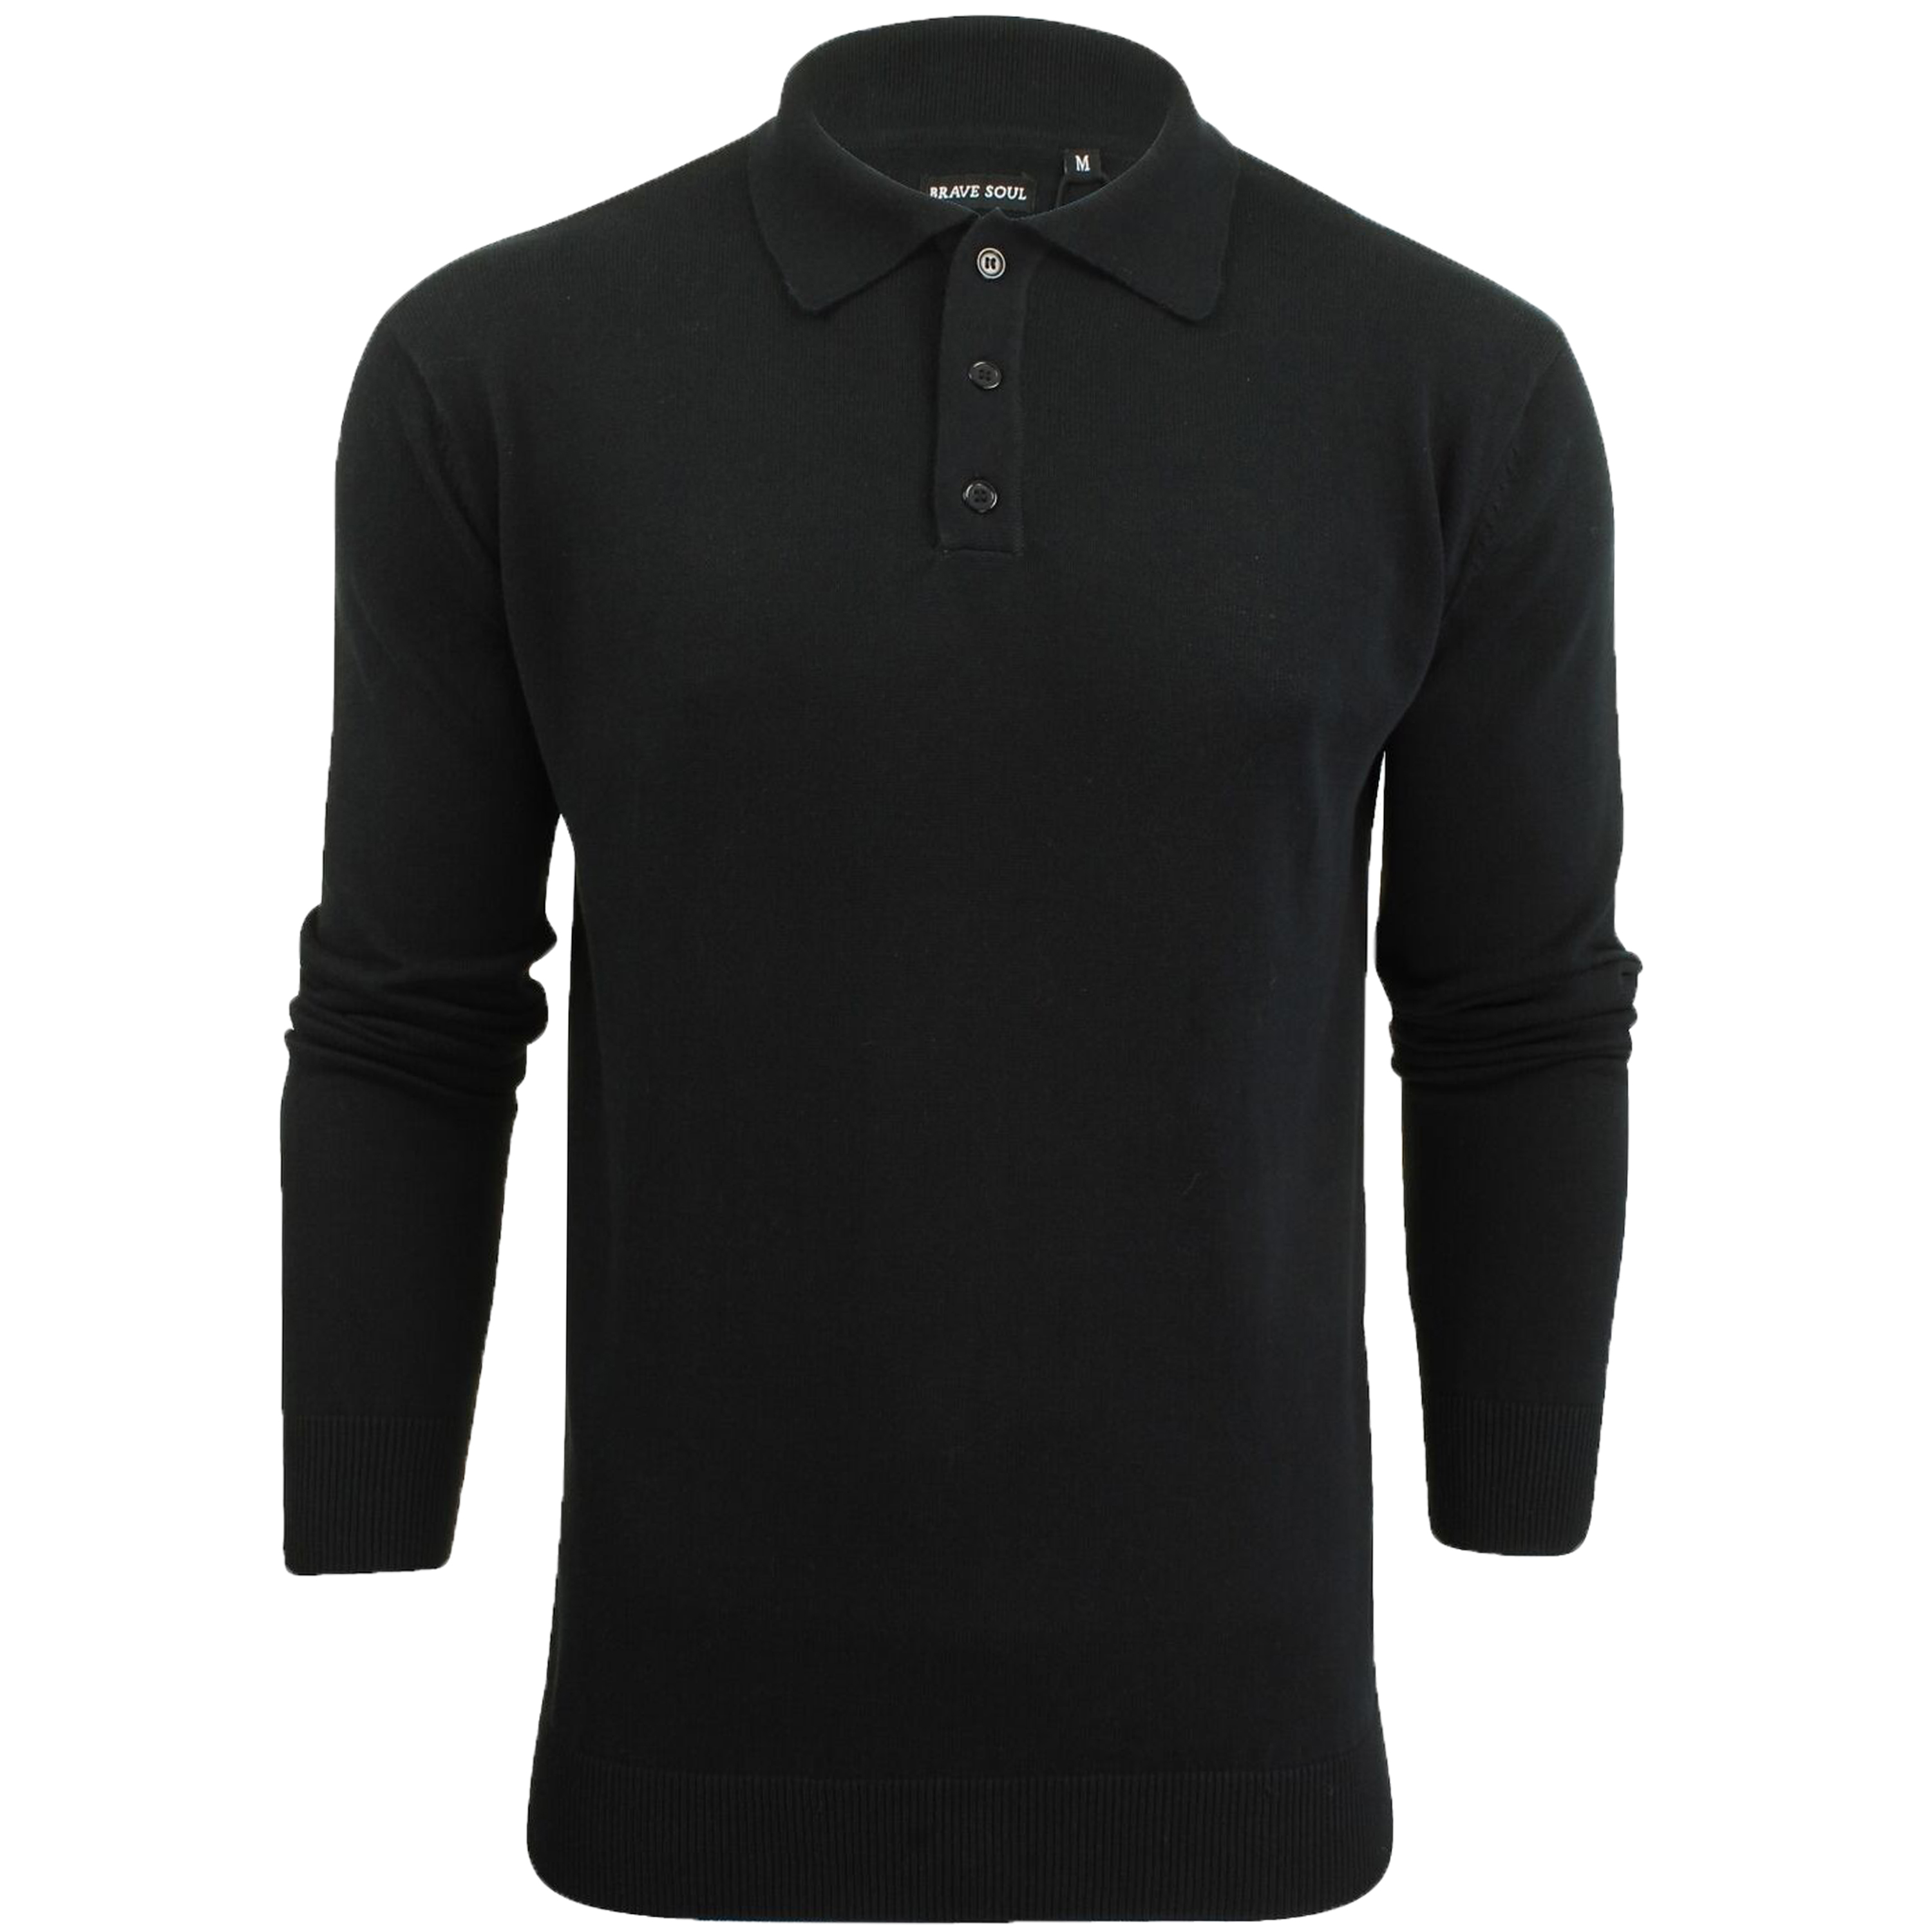 Mens-Knitted-Jumper-Brave-Soul-Polo-Top-Sweater-PLACKET-Pullover-Lightweight-New thumbnail 9